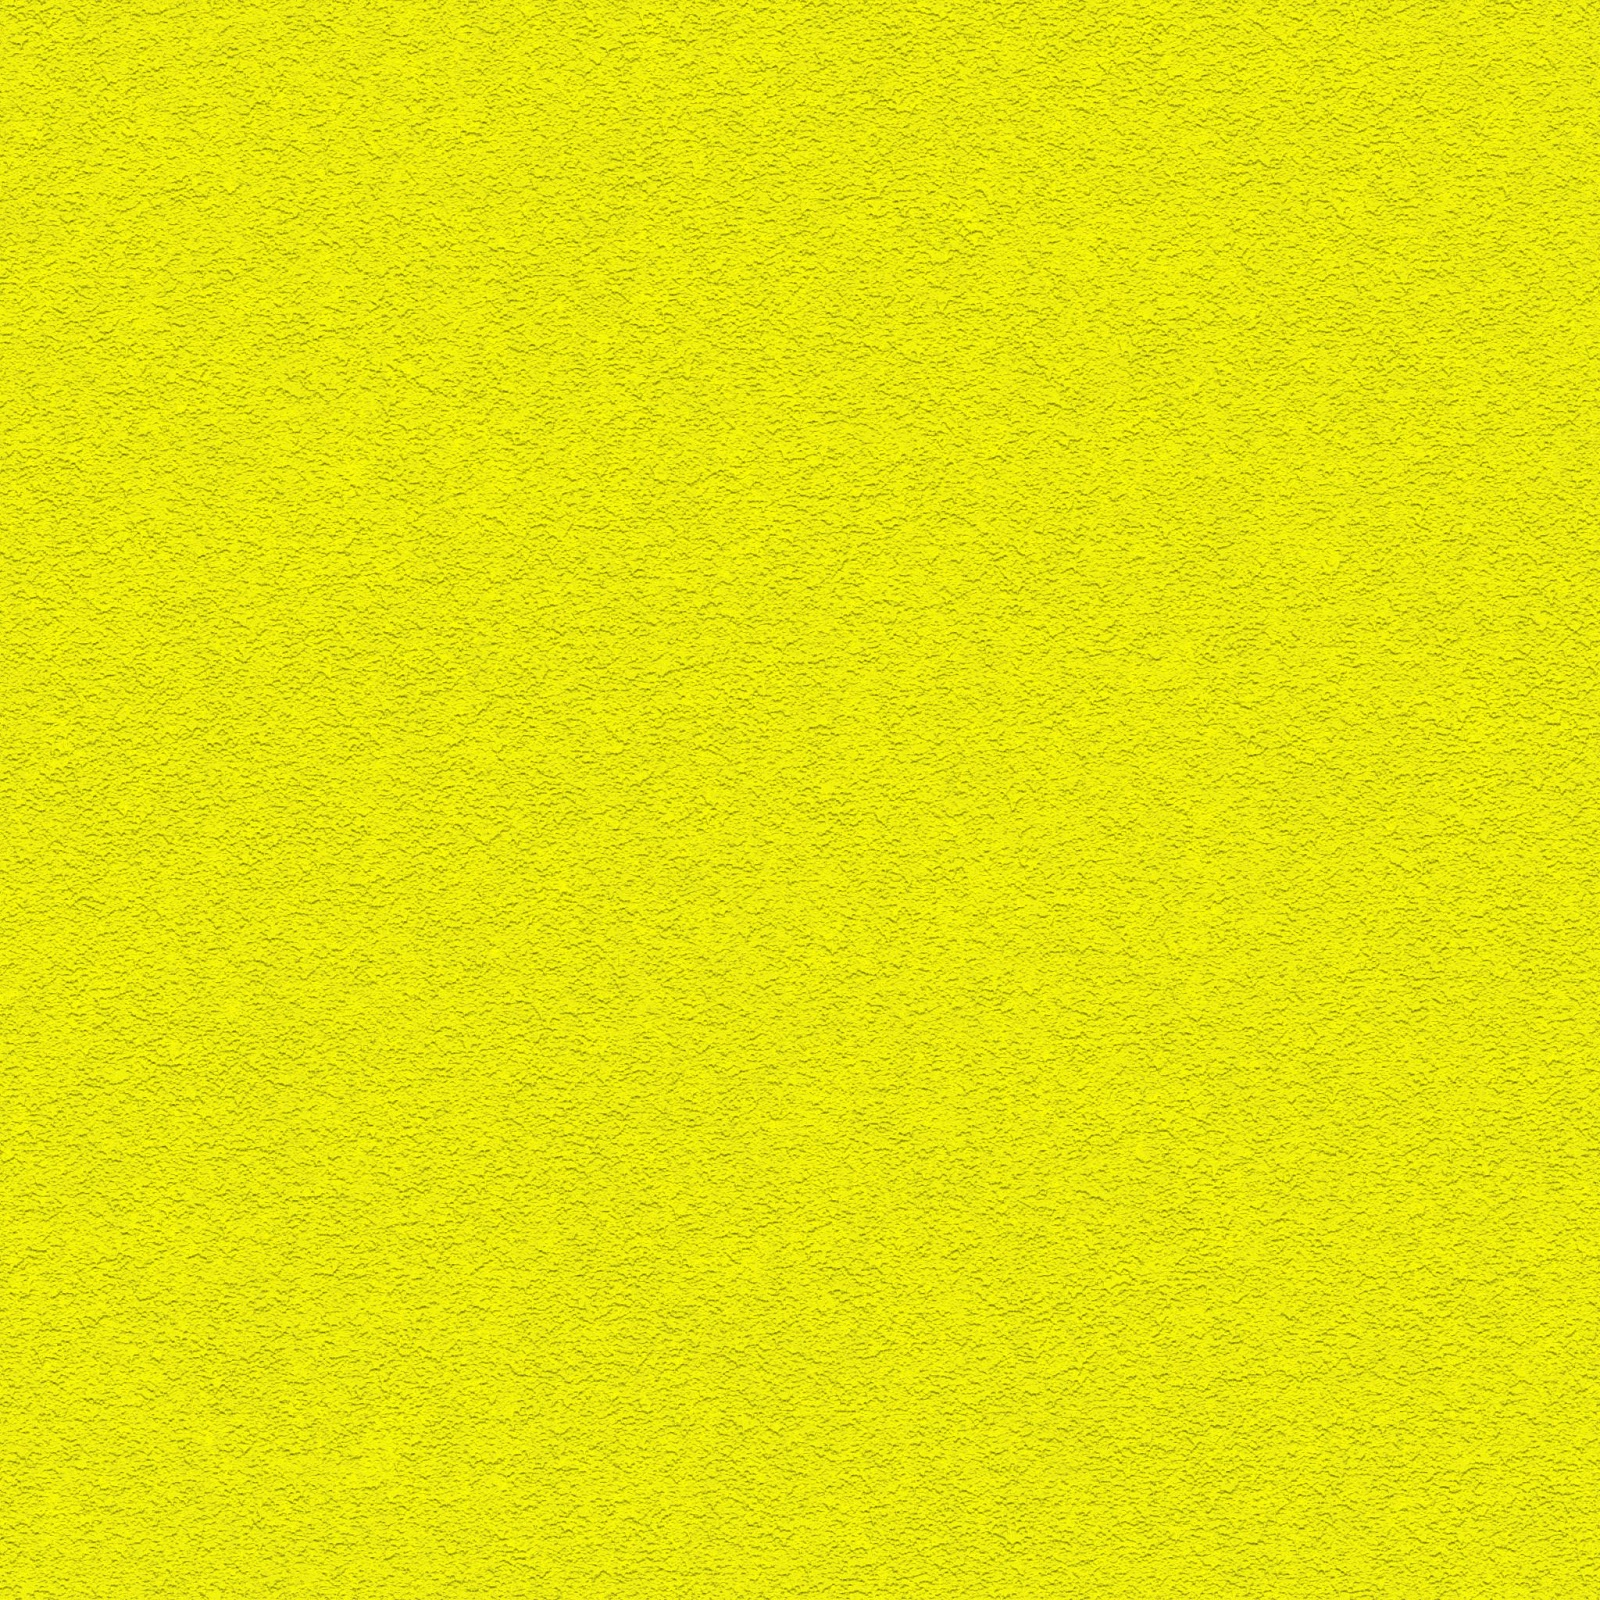 Smooth_stucco_yellow_paint_plaster_wall_texture_seamless_tileable